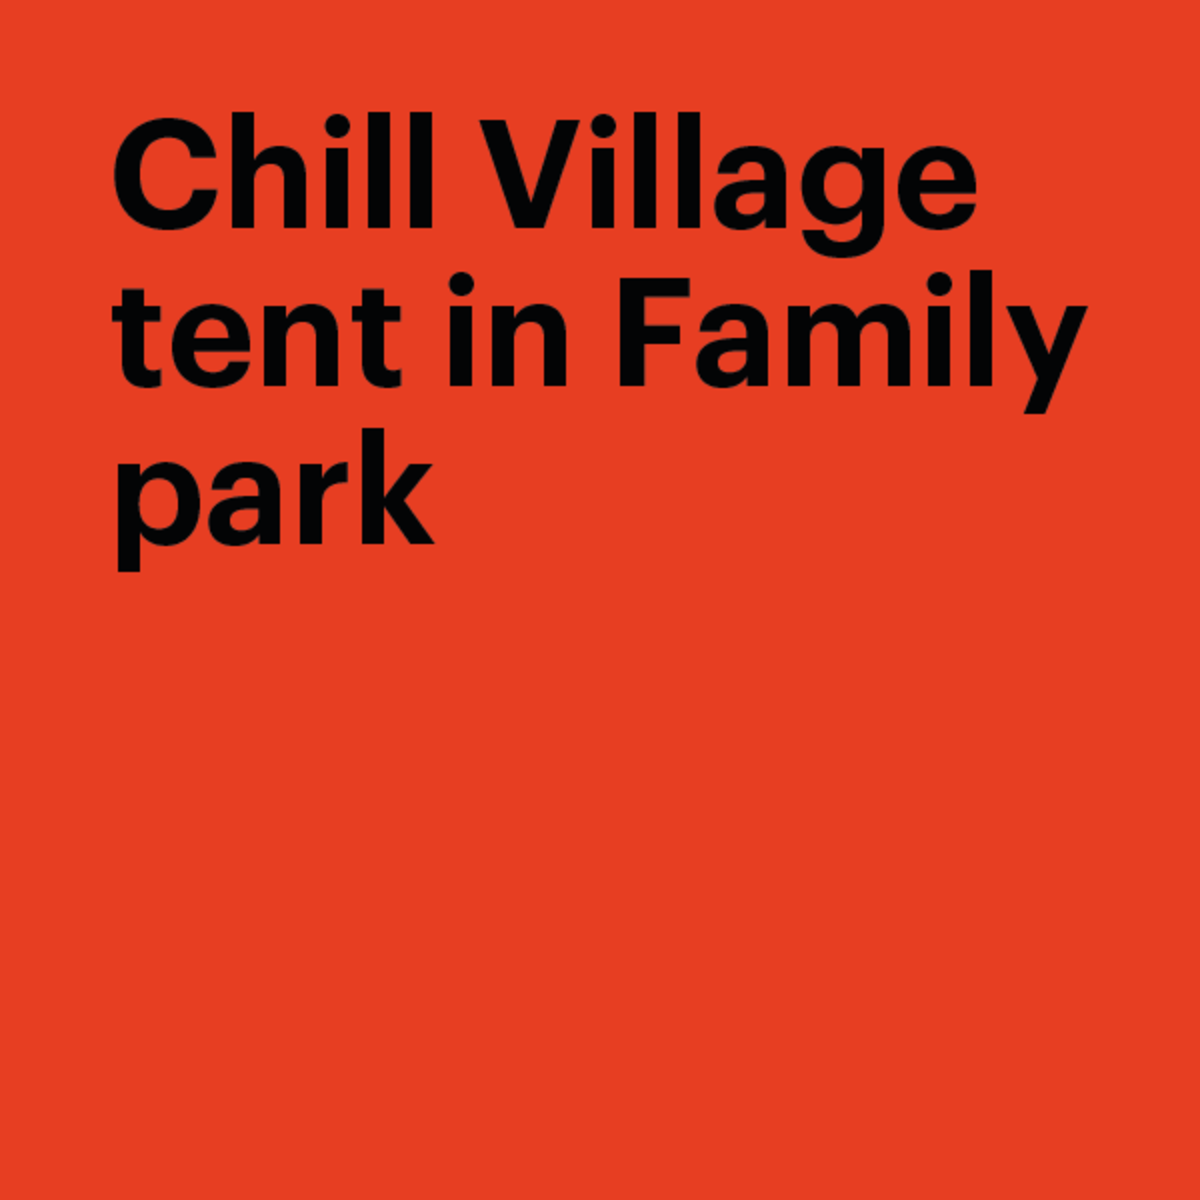 Orange Png Of People At A Park - Chill Village tent in Family Park | Pohoda Festival